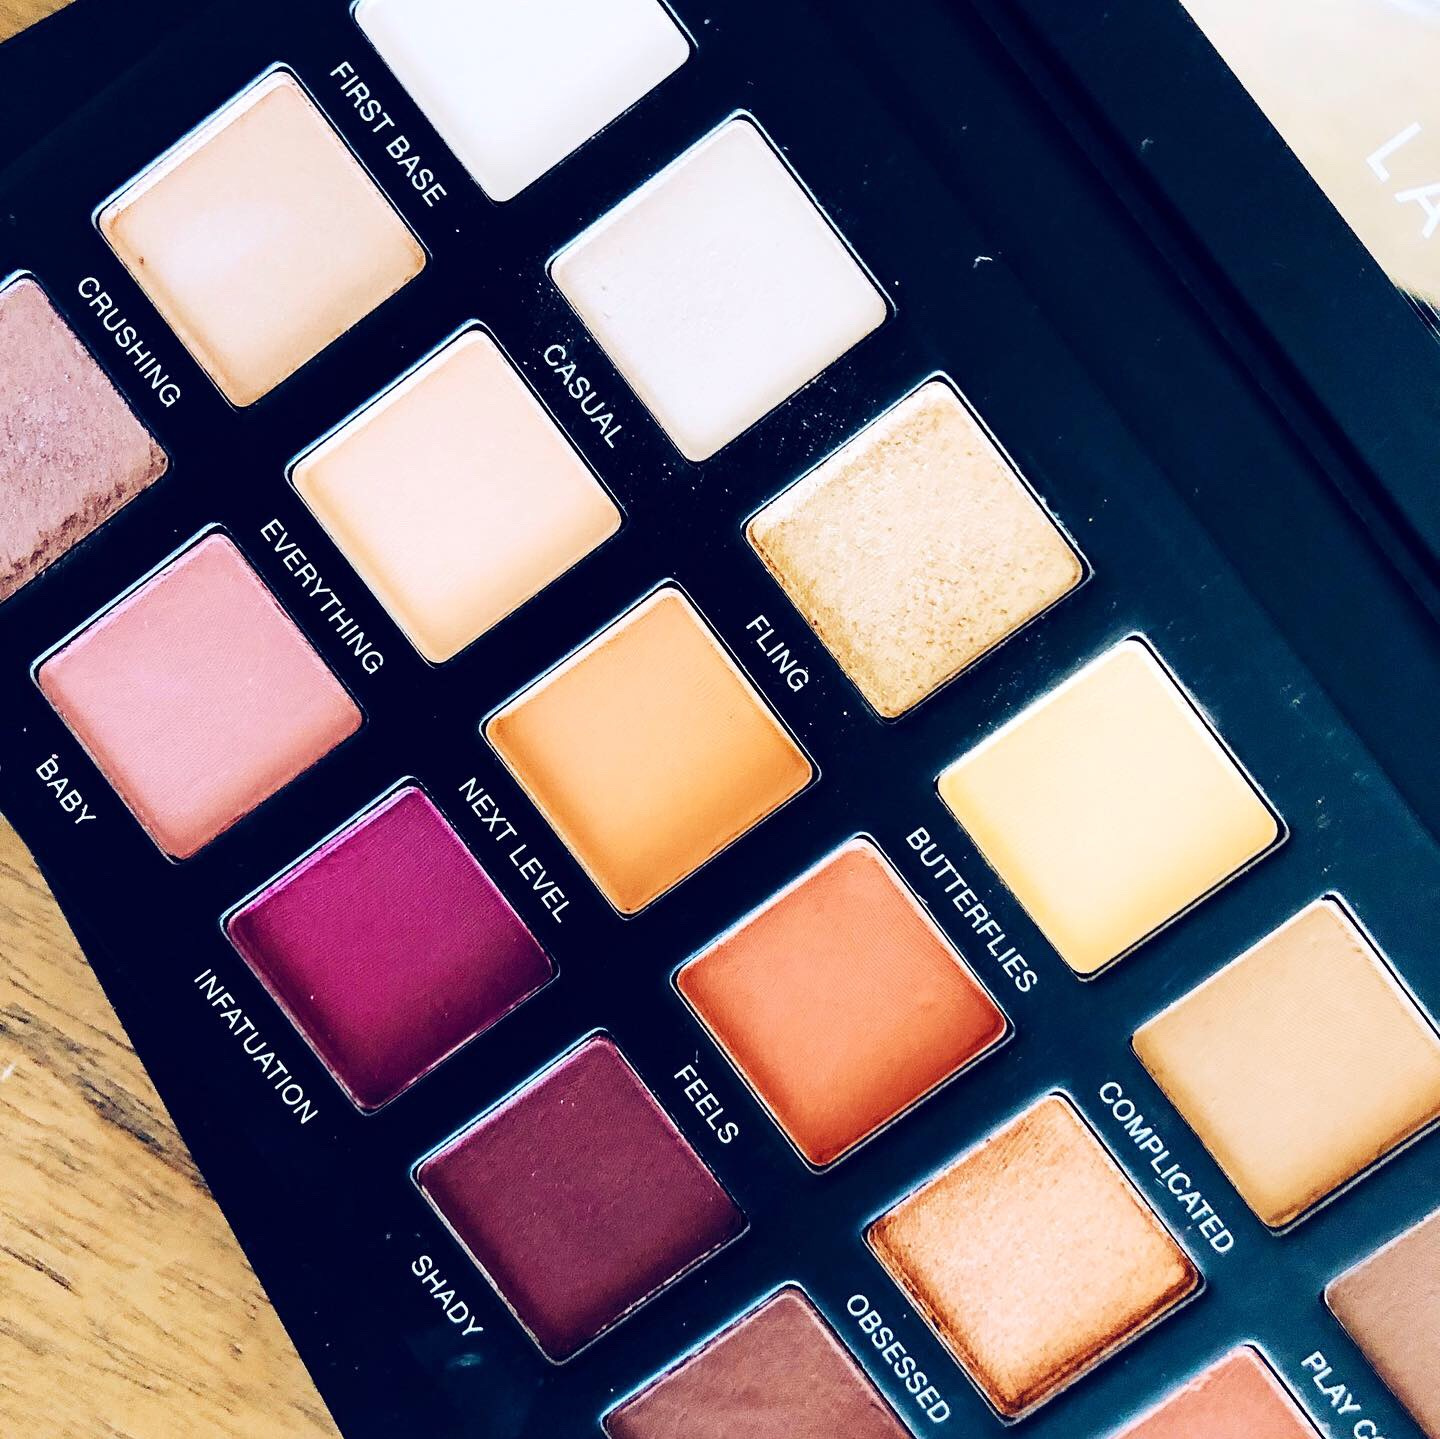 Lawless The One Eyeshadow Palette